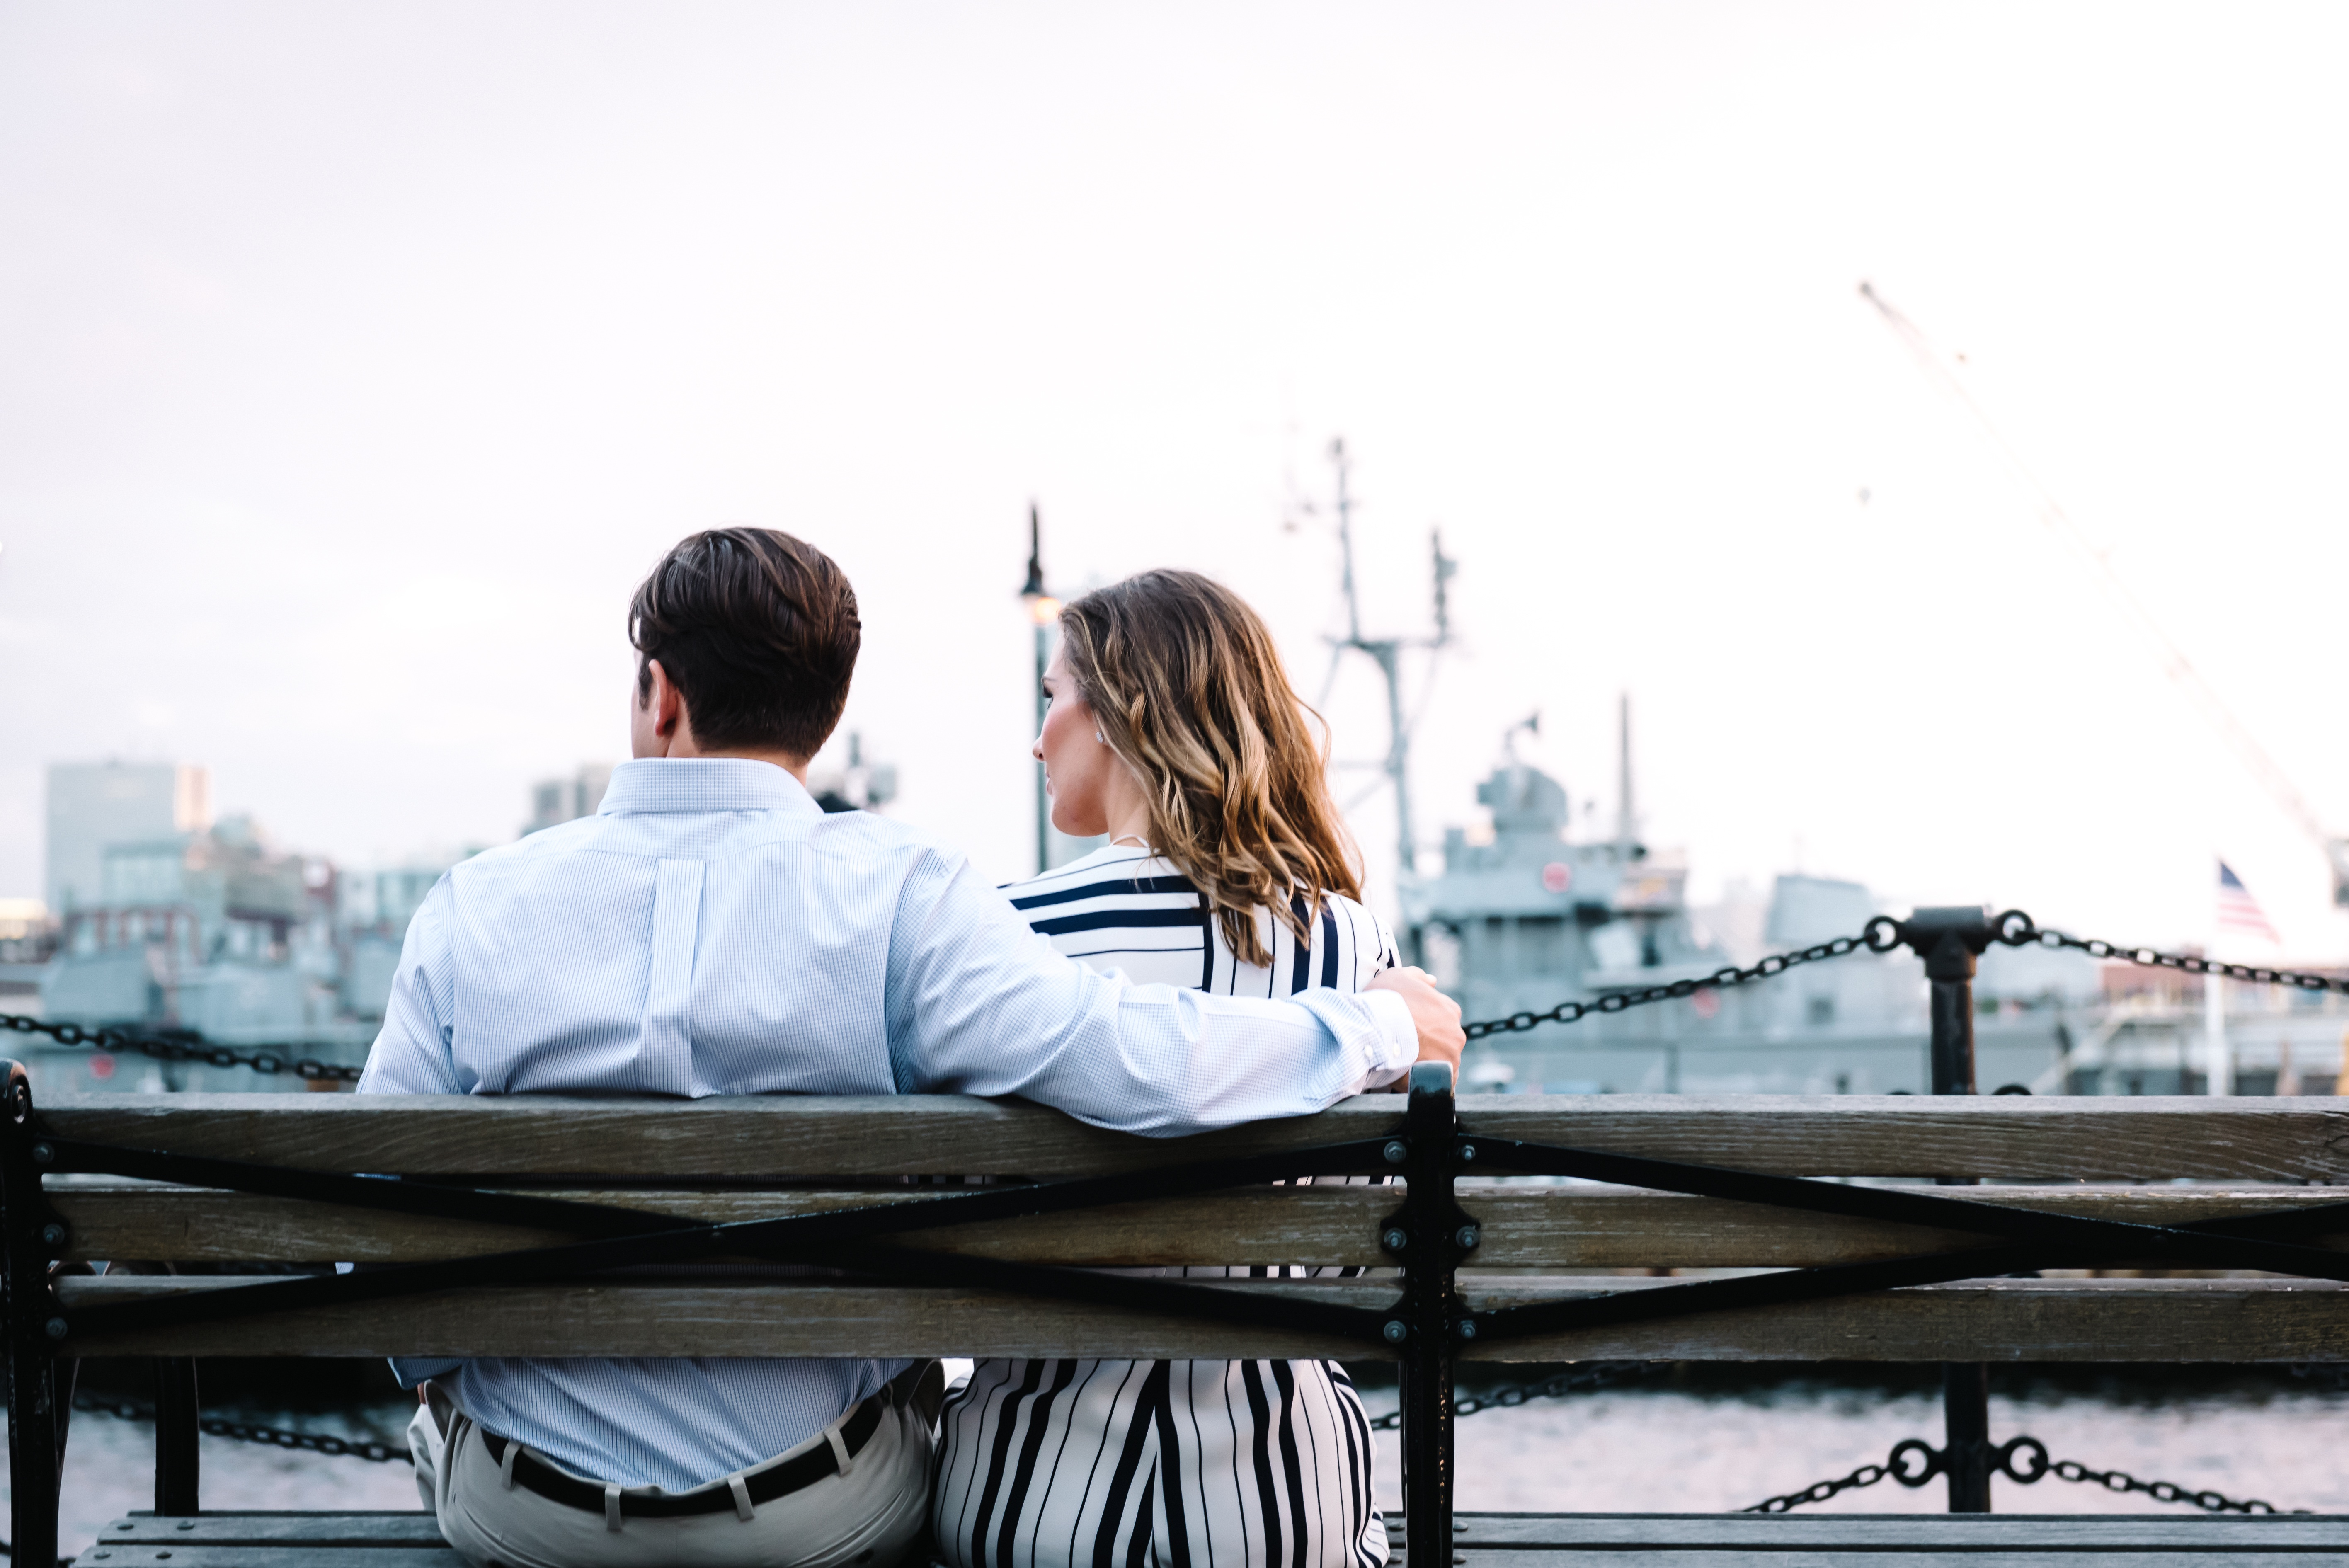 3 couples activities in Toronto that are actually pretty cool